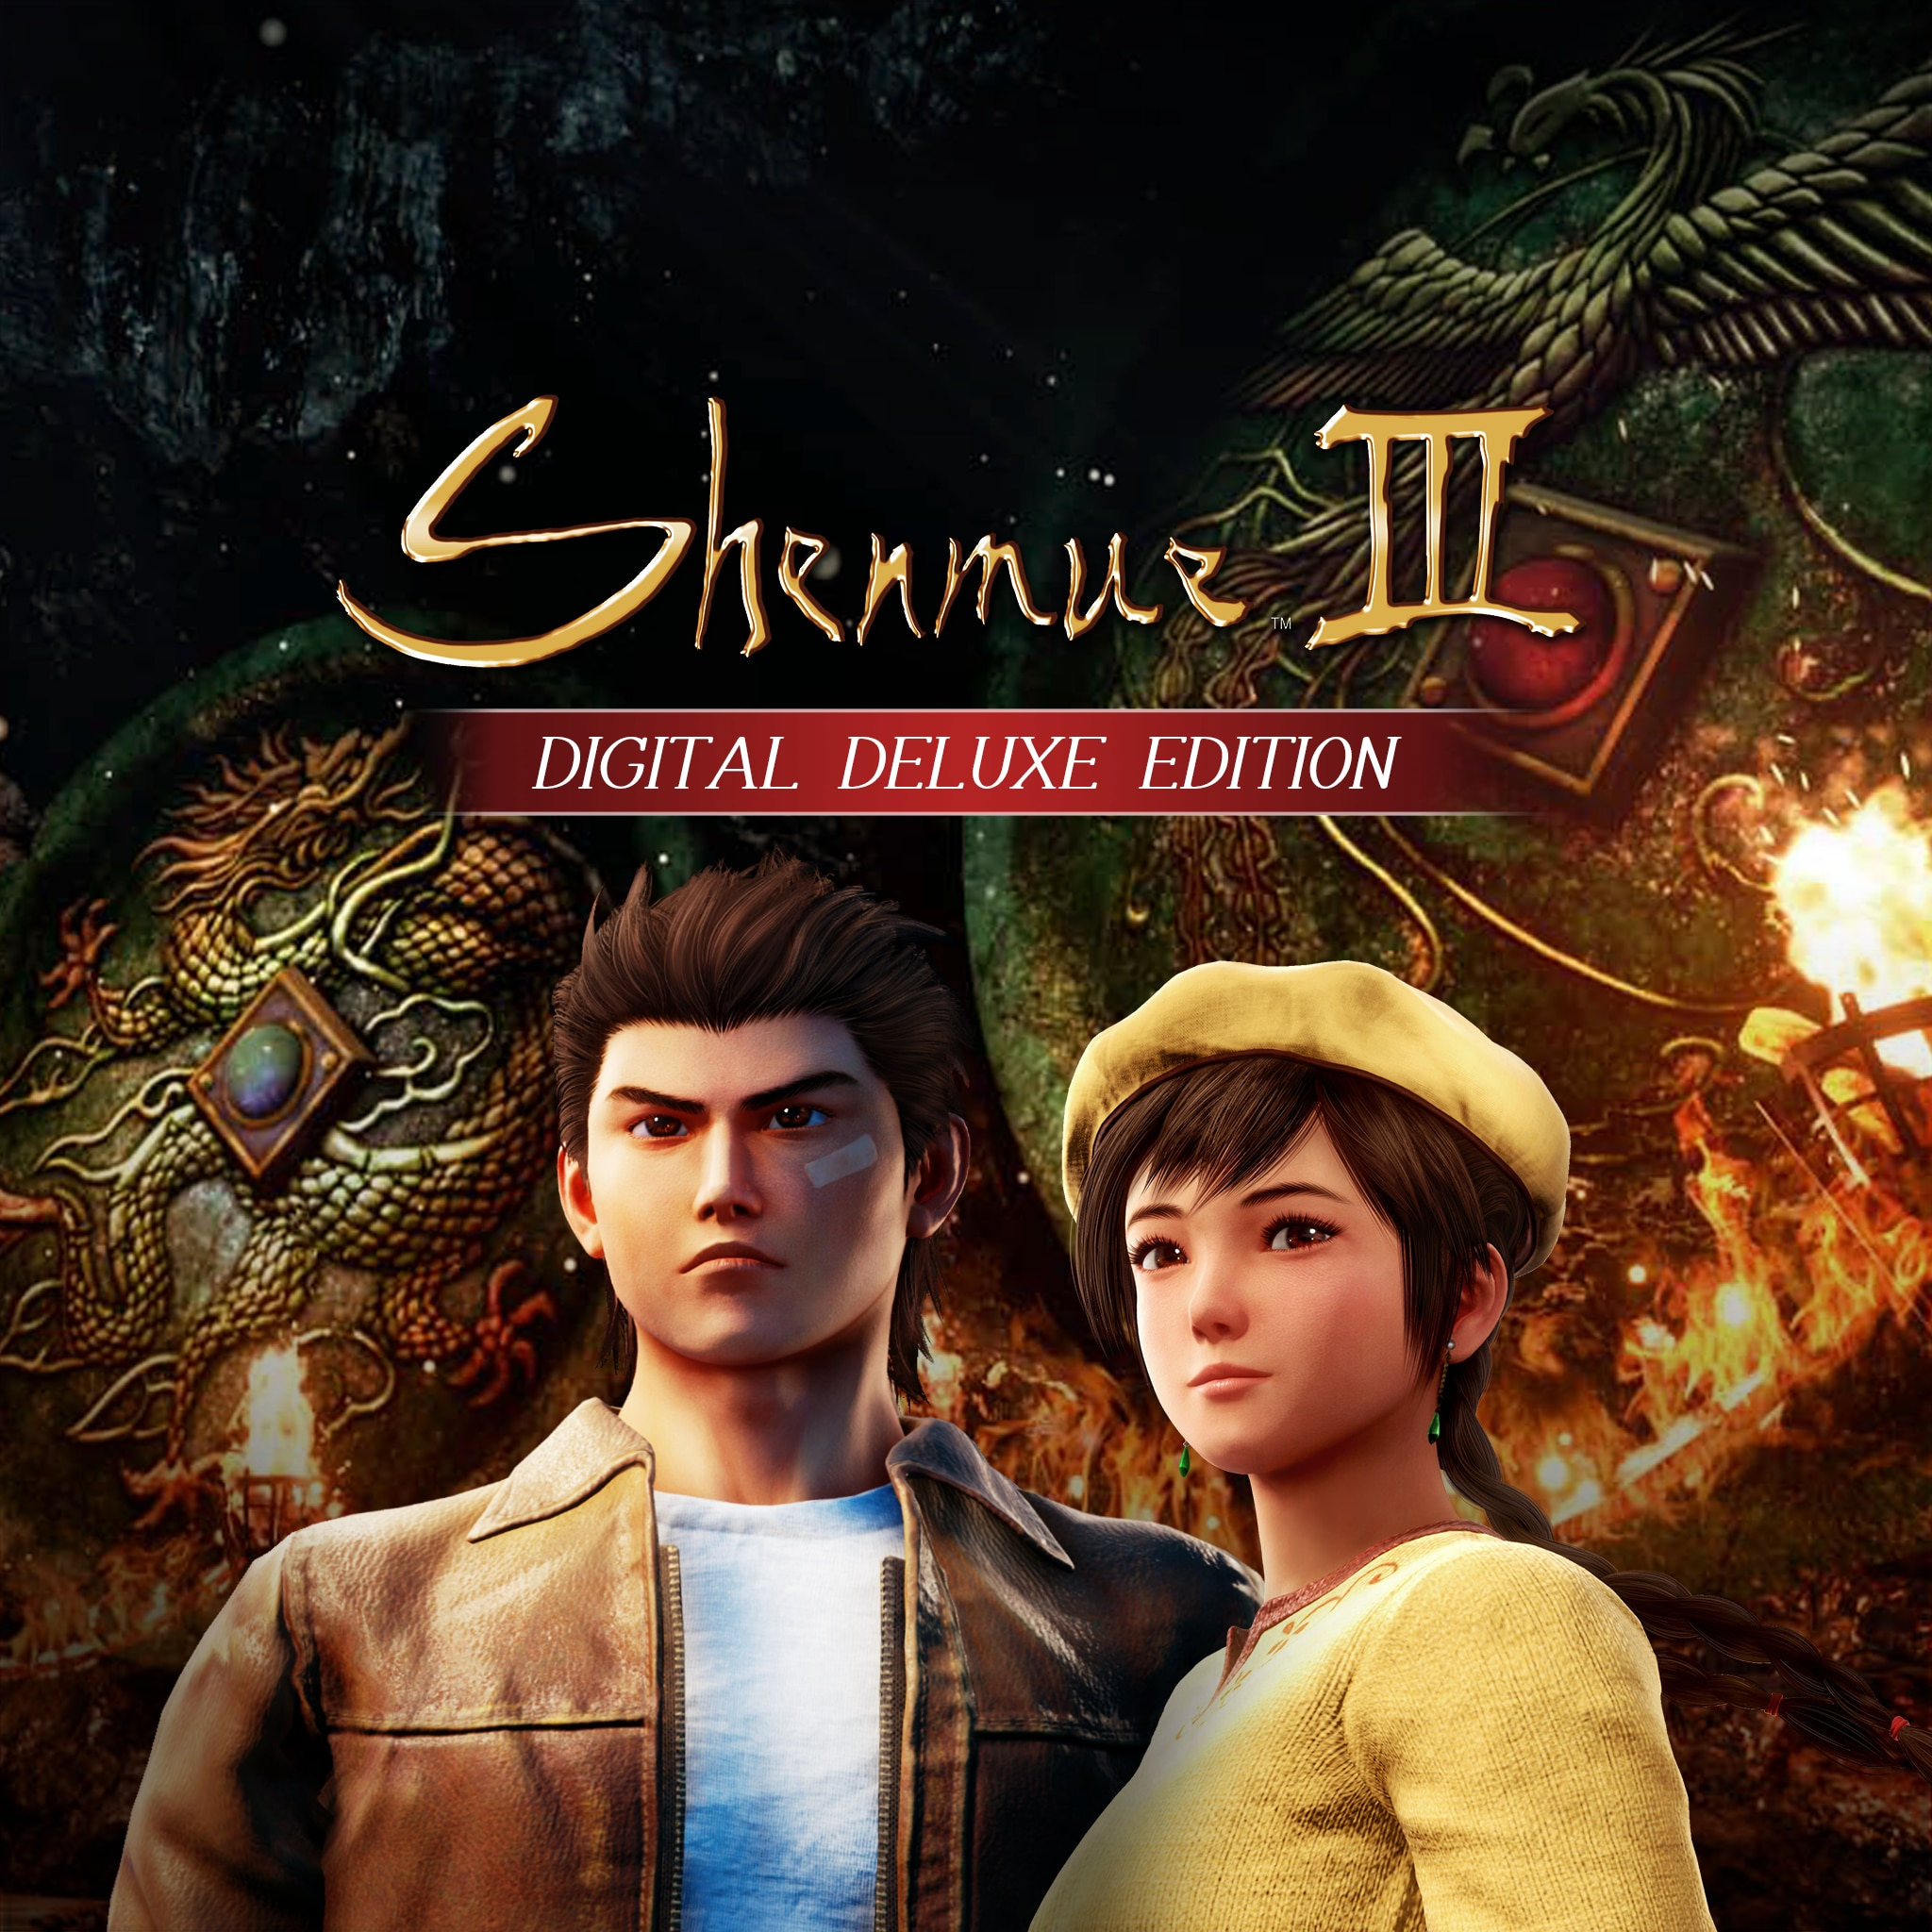 Shenmue III - Digital Deluxe Edition